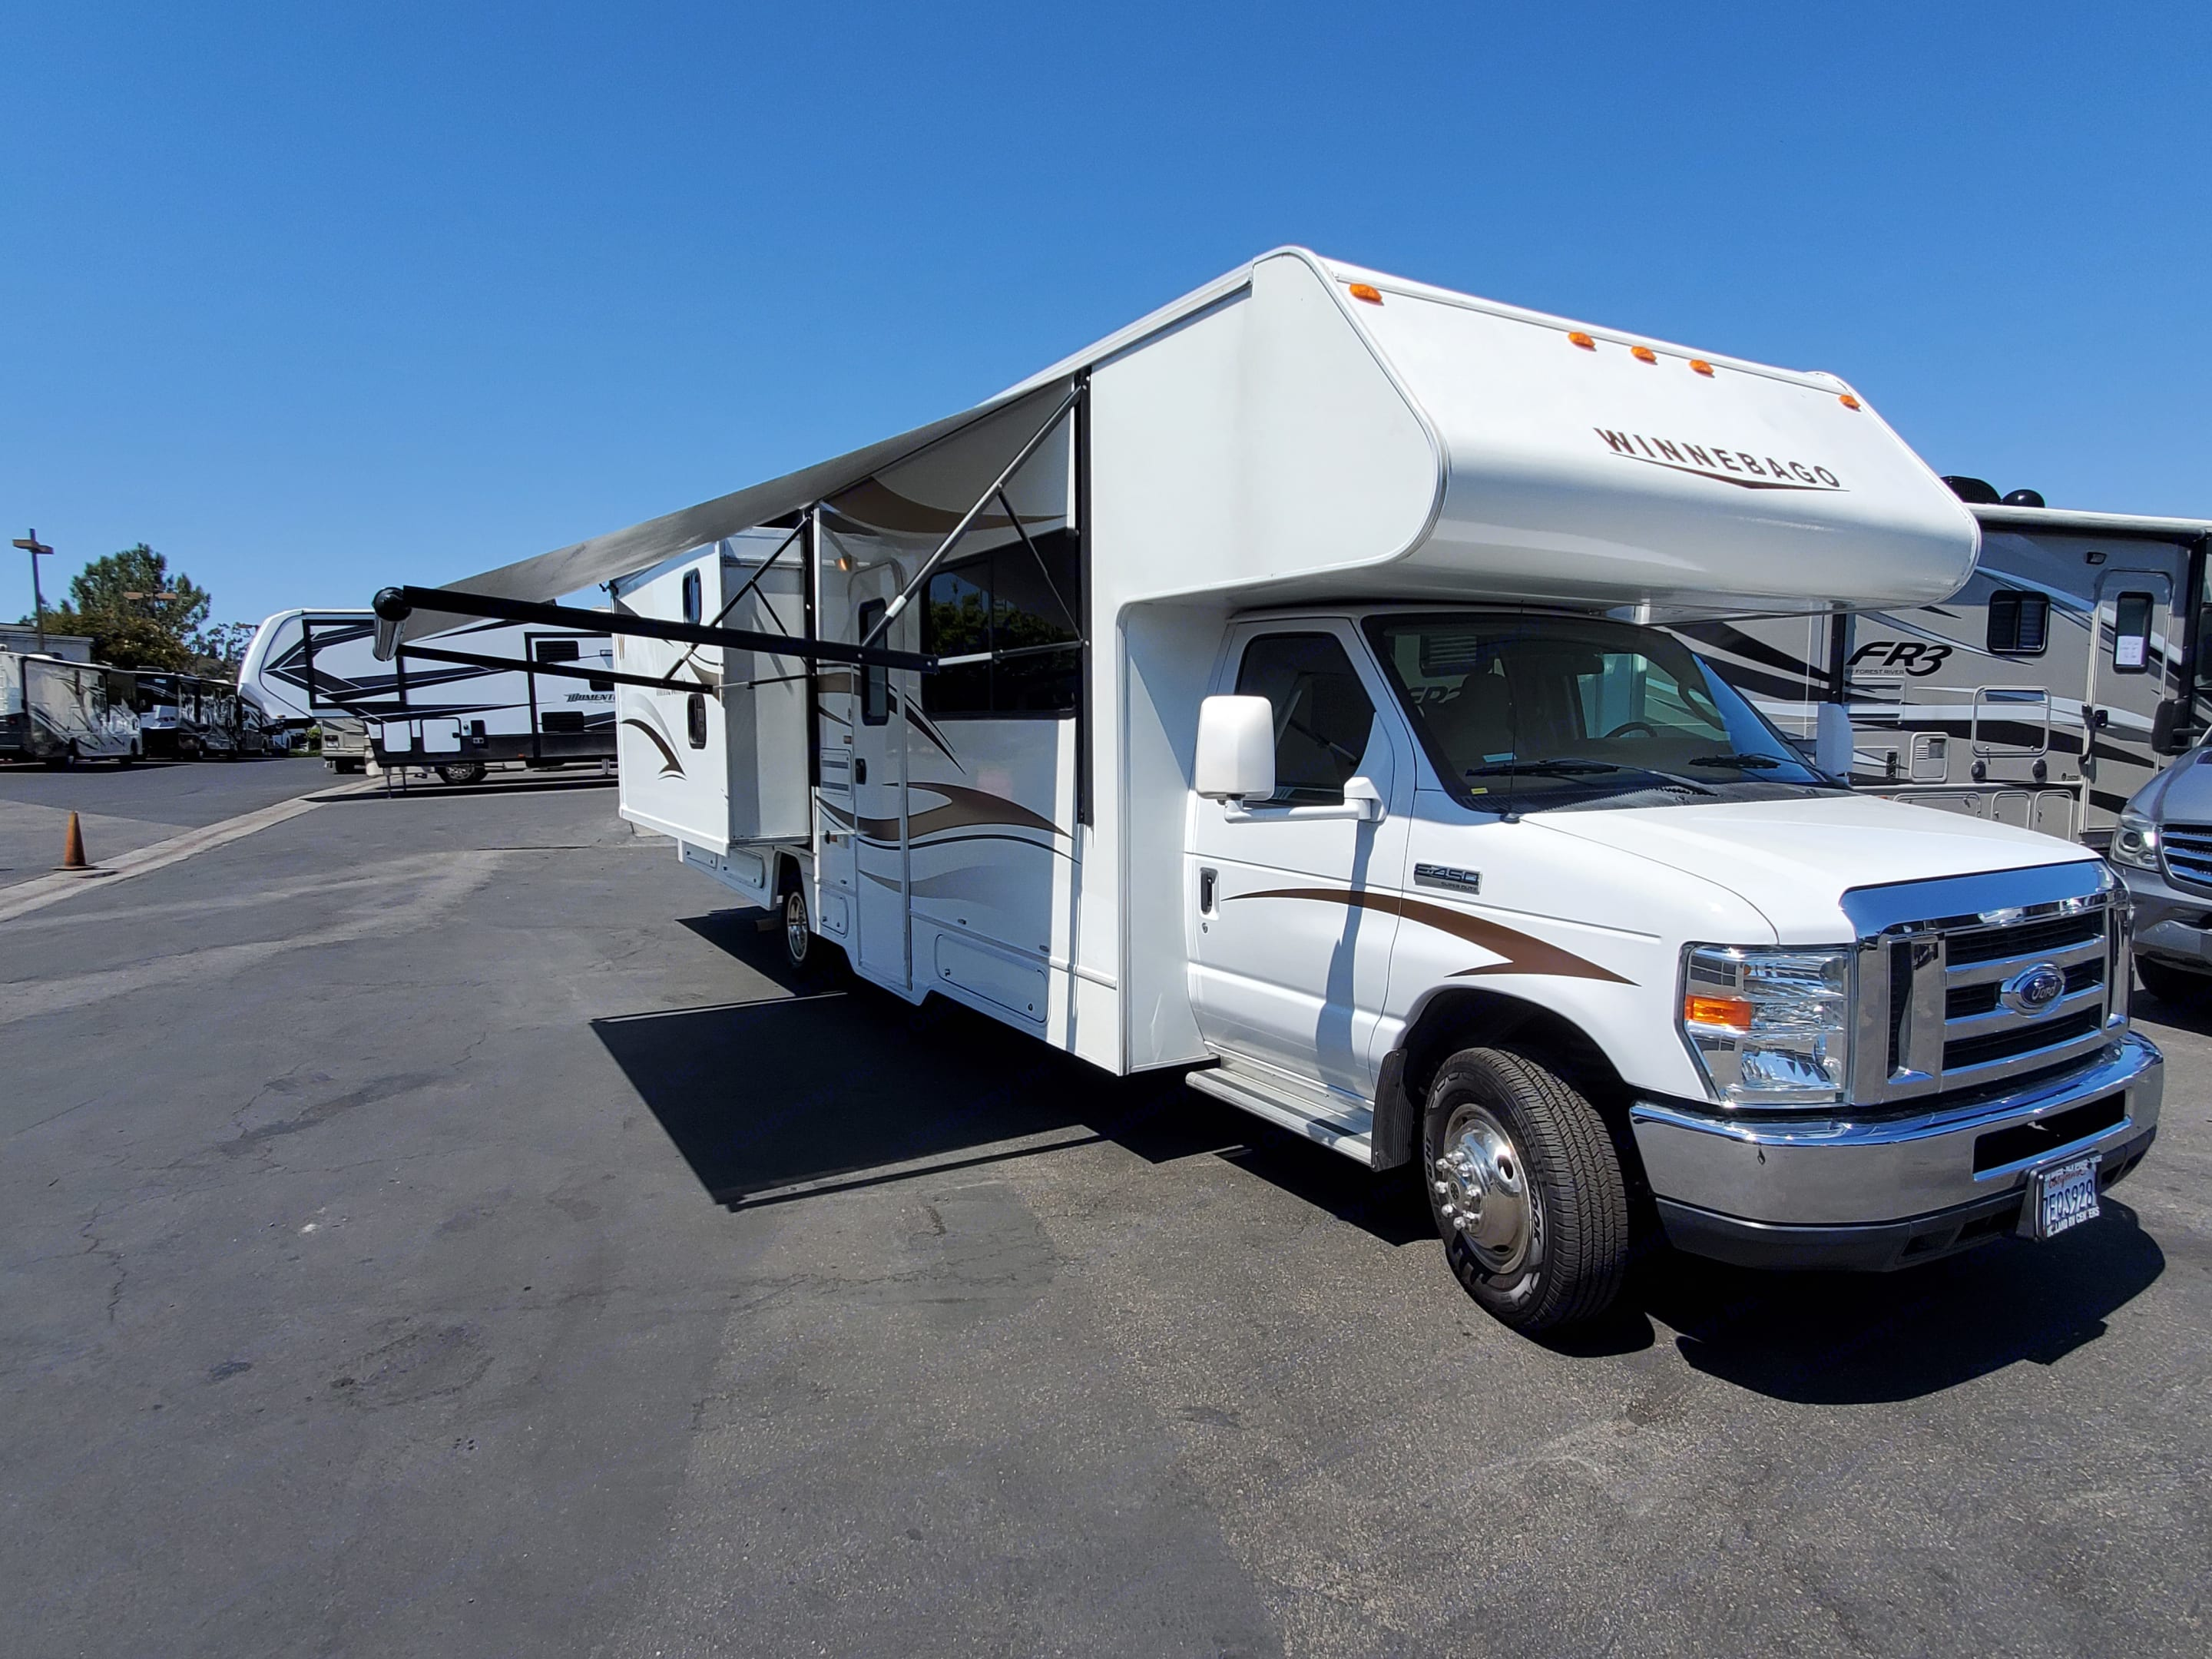 Electric awning which only takes seconds to set up and enjoy the shade. (2) electric slide outs turns your RV into a spacious home.. Winnebago Other 2014